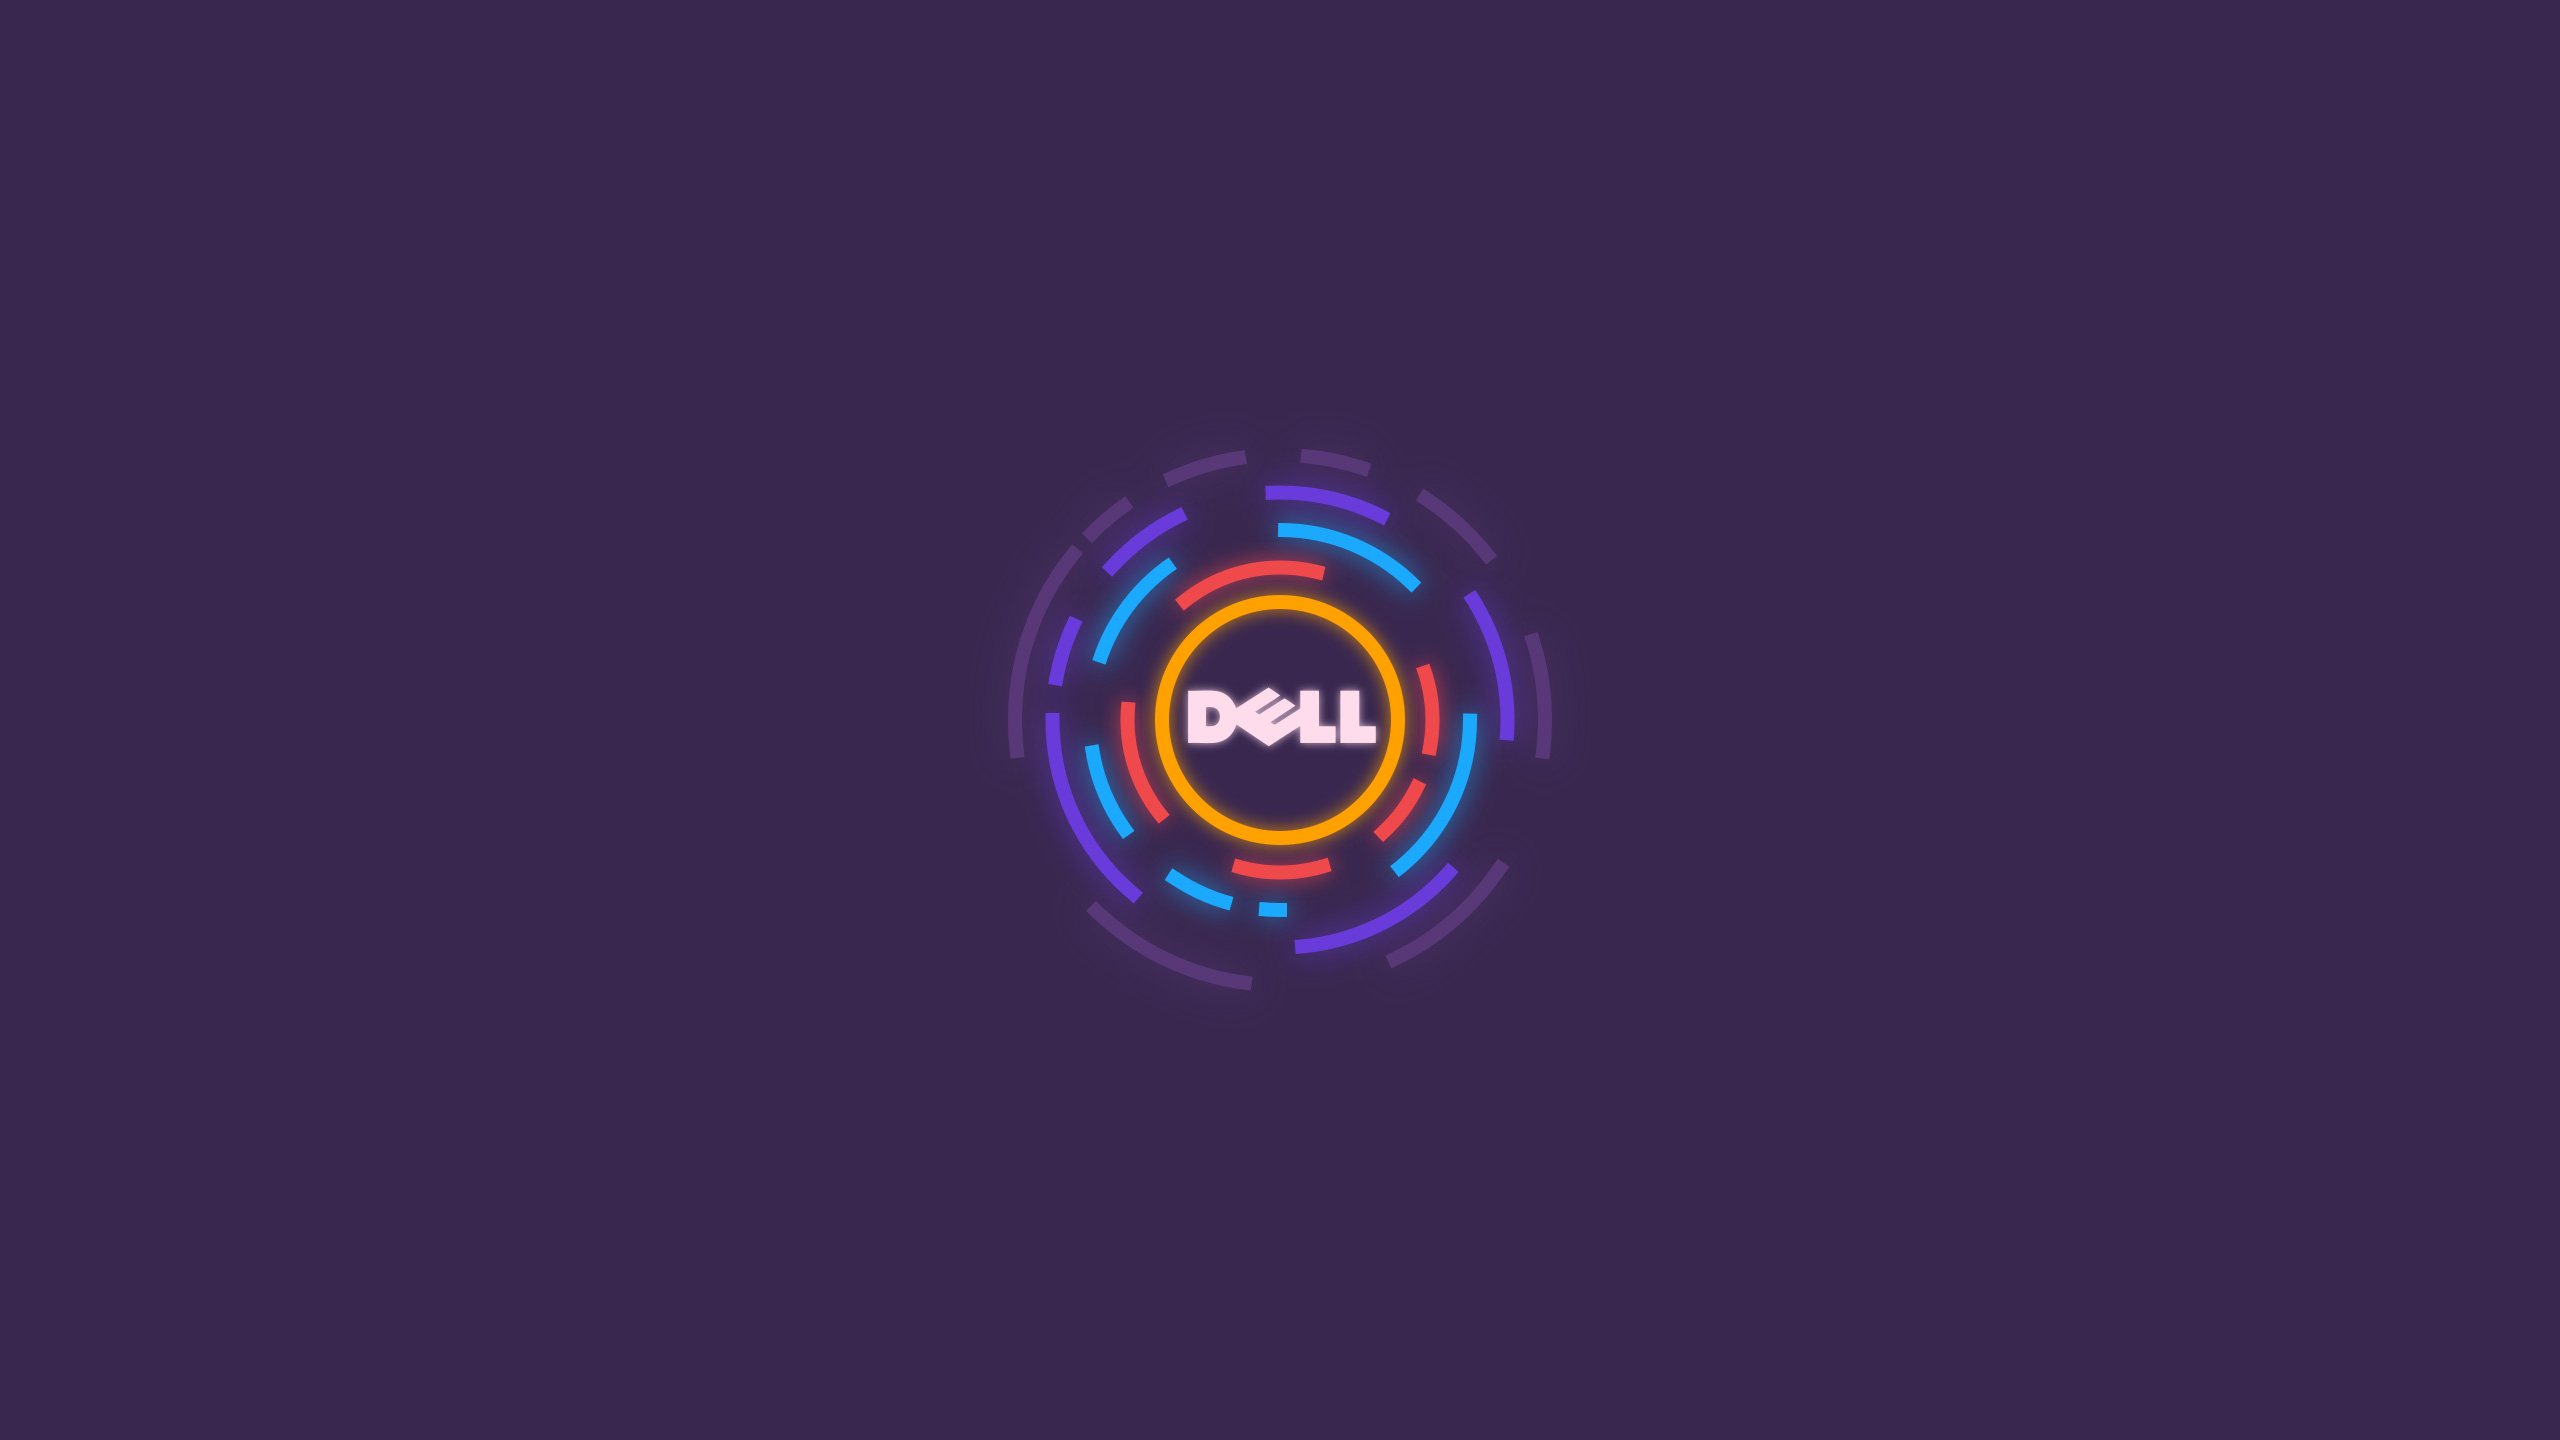 Dell logo minimalism hd computer 4k wallpapers images - 4k wallpaper for dell laptop ...